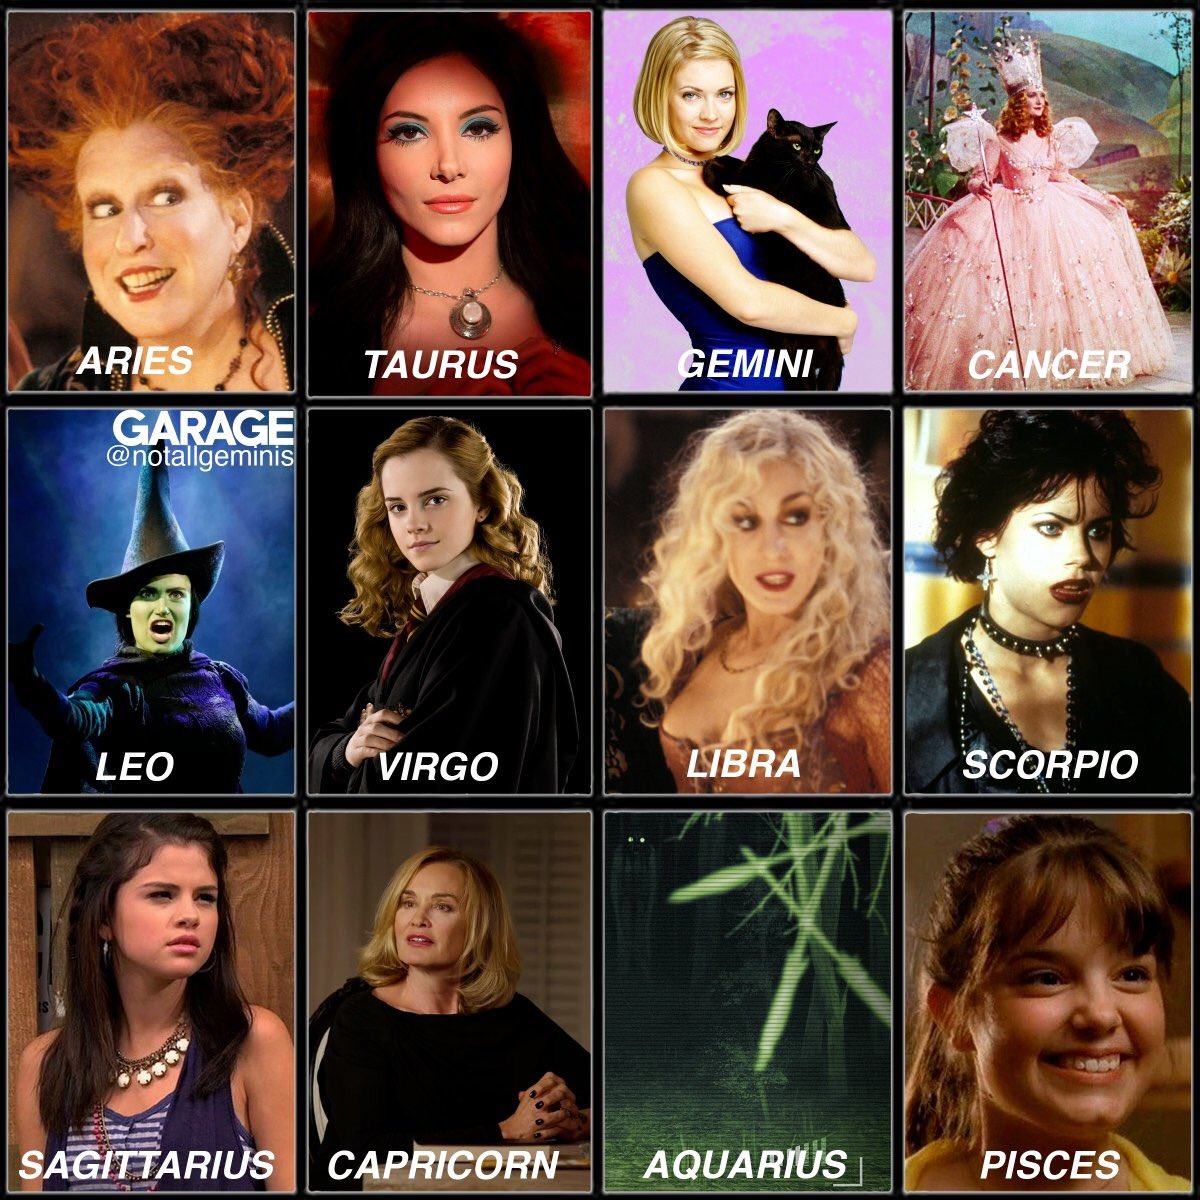 @ yourself but wtf I'm Selena Gomez from Wizards of Waverly place??? <br>http://pic.twitter.com/eilLKpJr6z